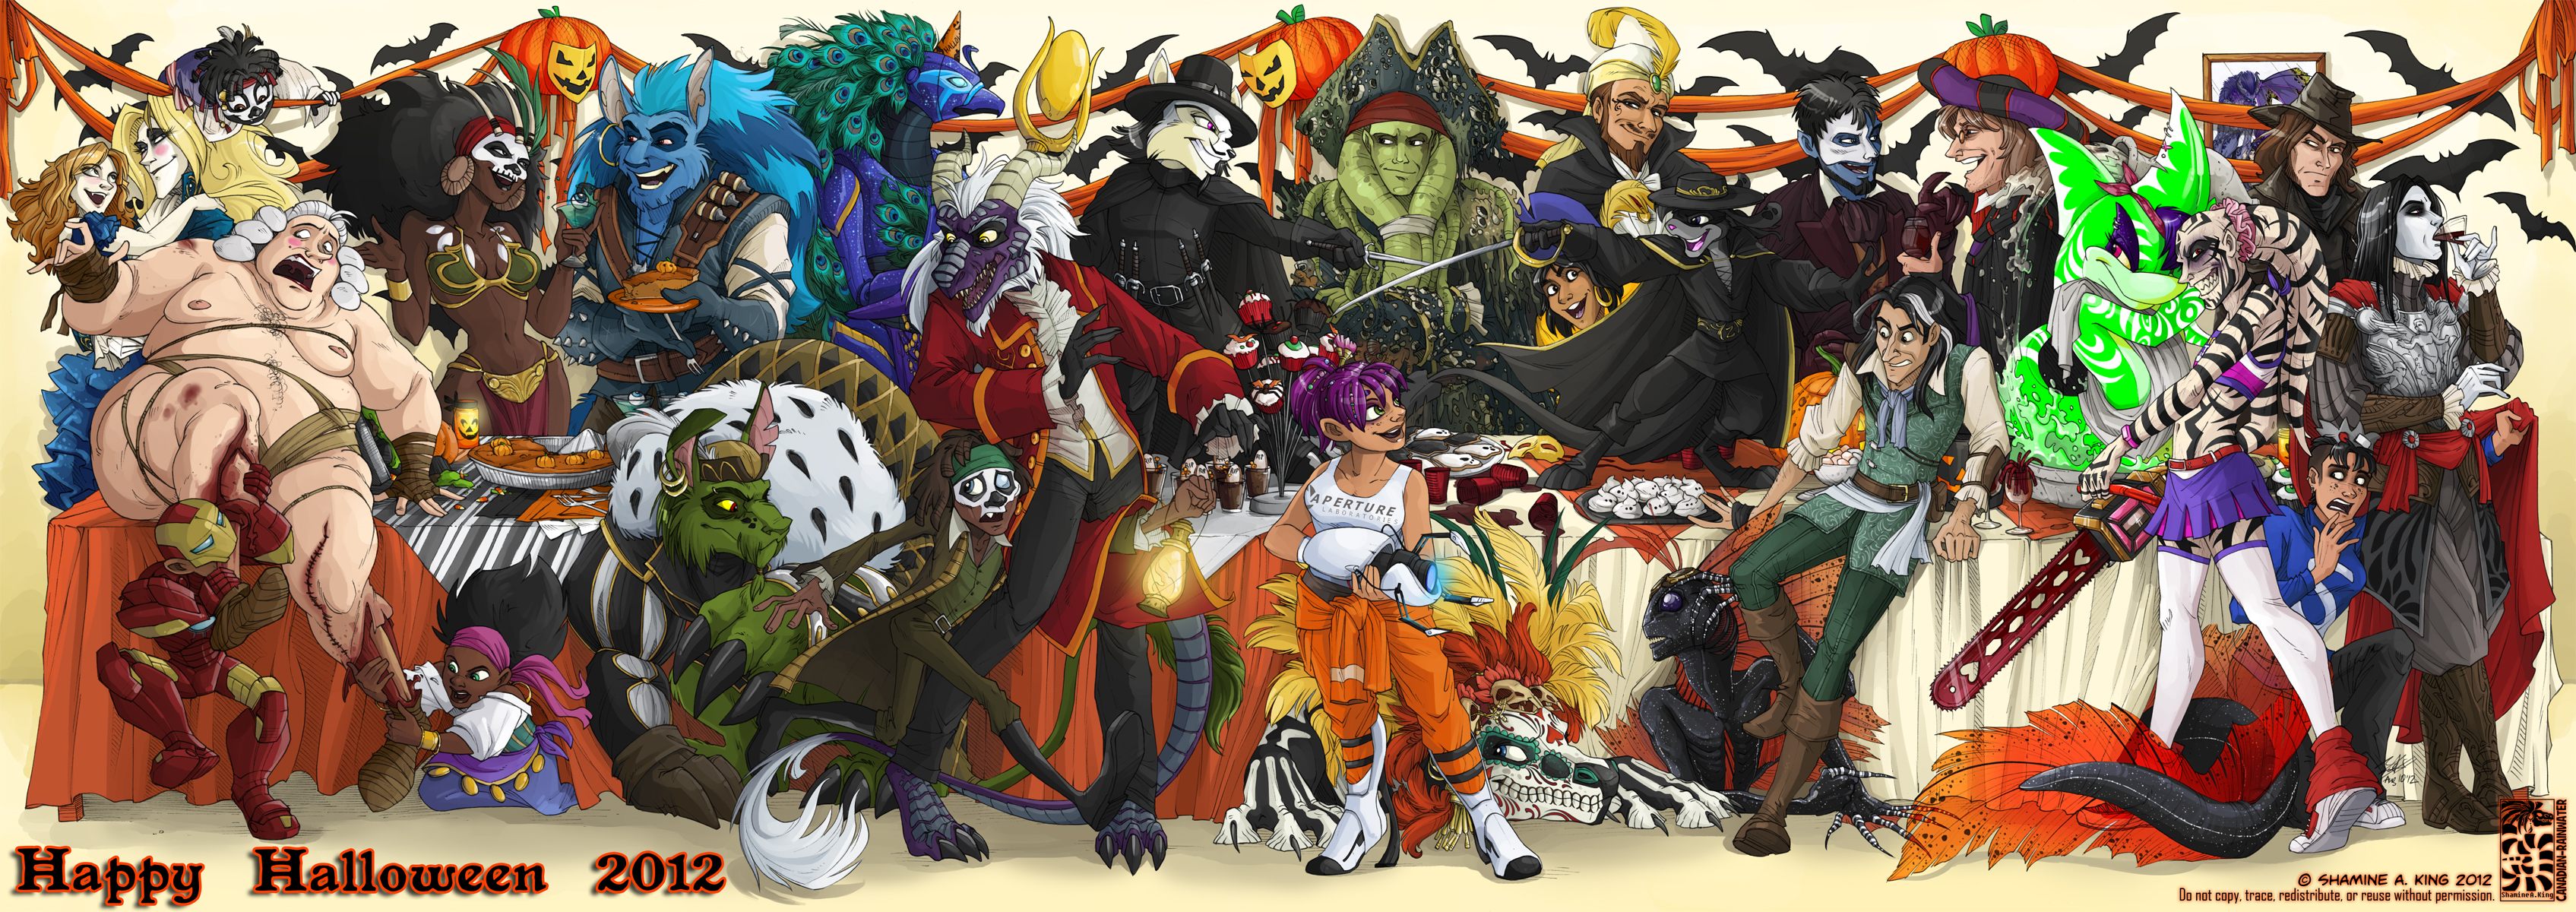 HAPPY HALLOWEEN from the Harem!